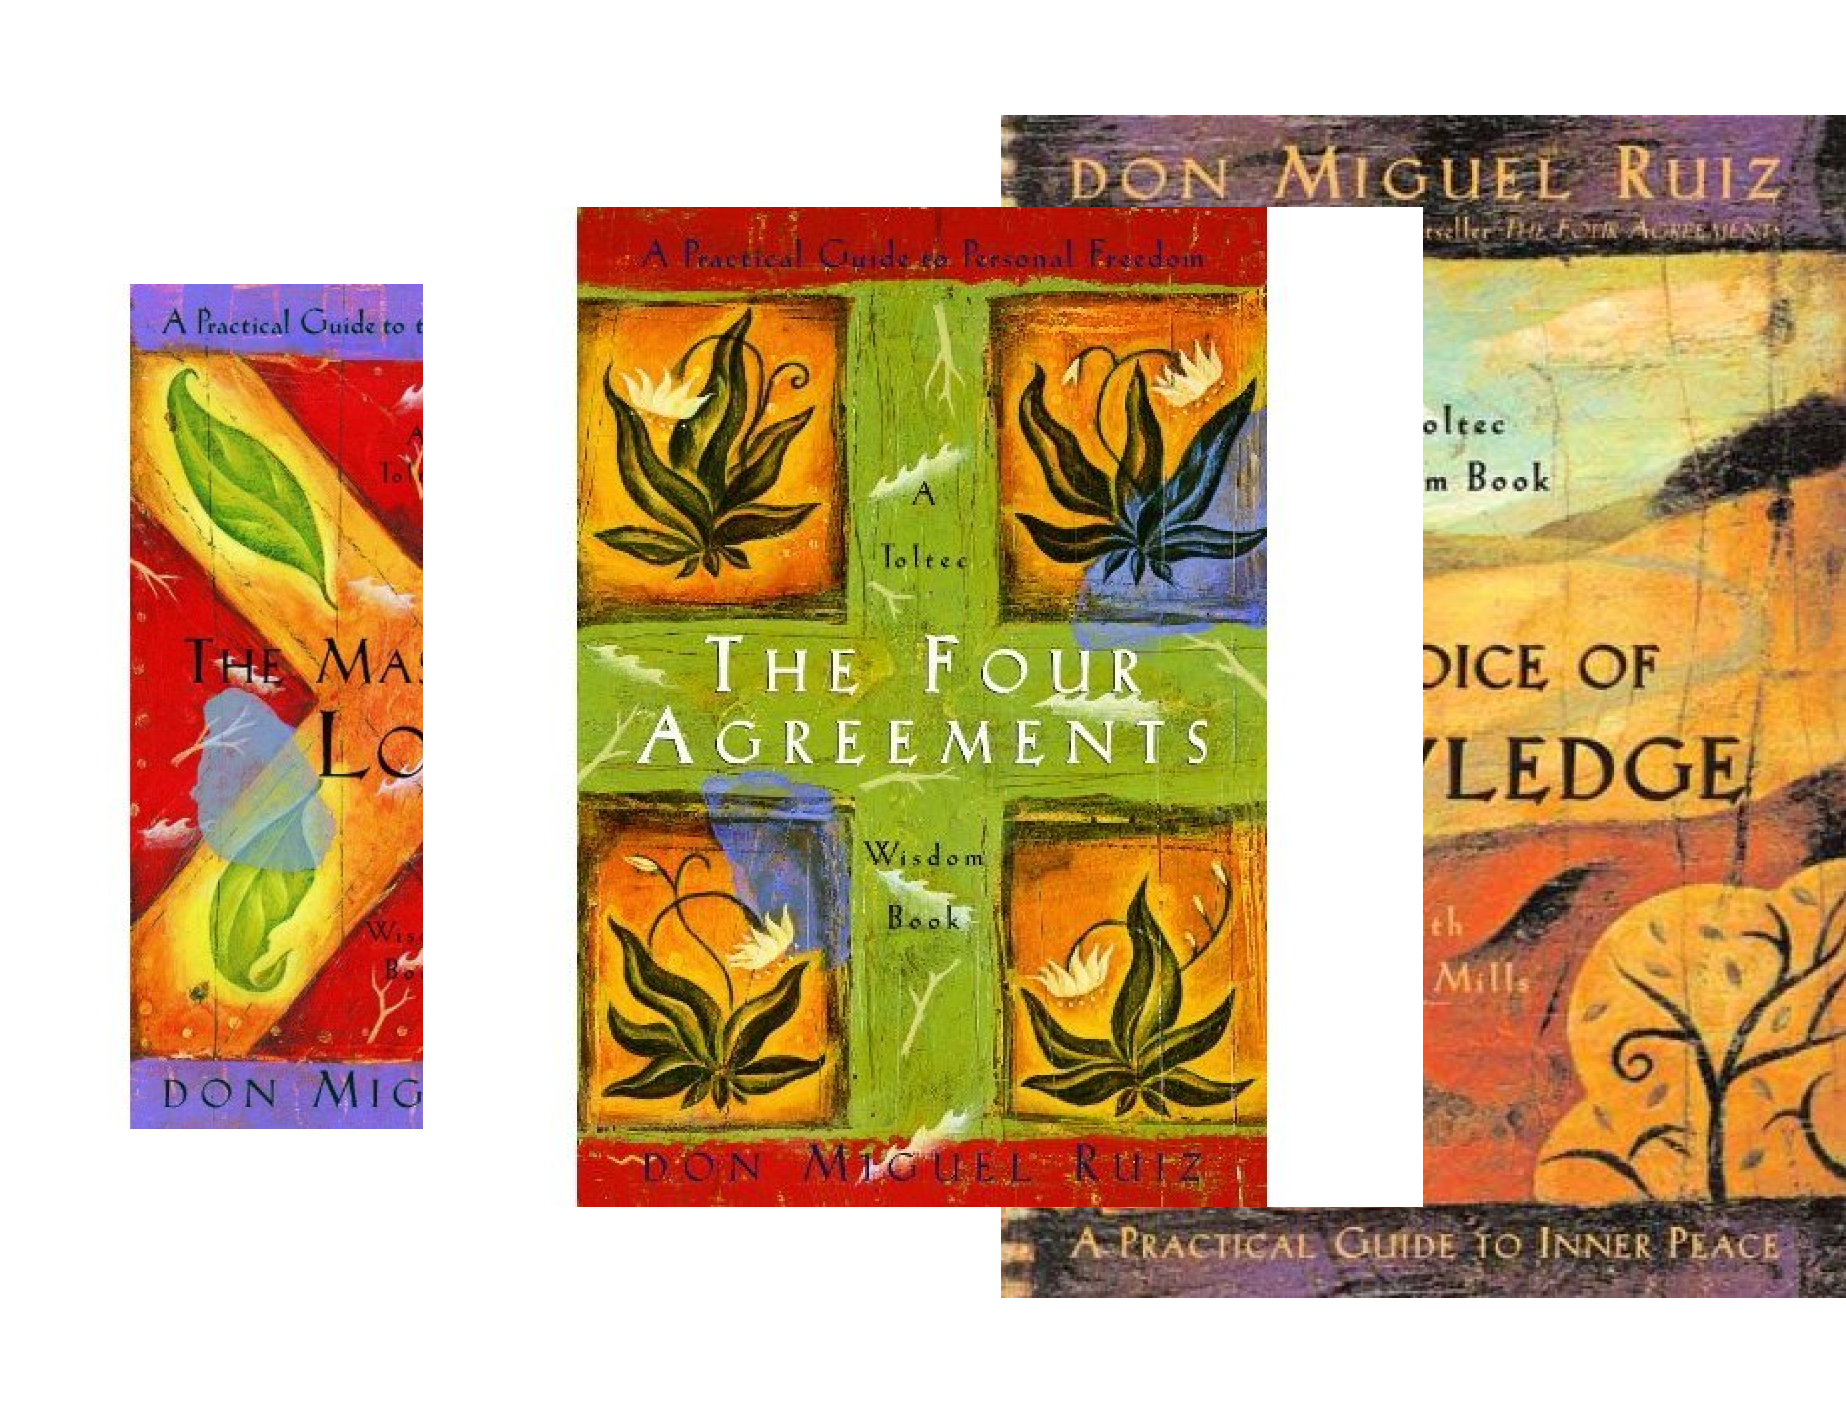 The Four Agreements Toltec Wisdom Collection: 3-Book Boxed Set (3 Book Series)